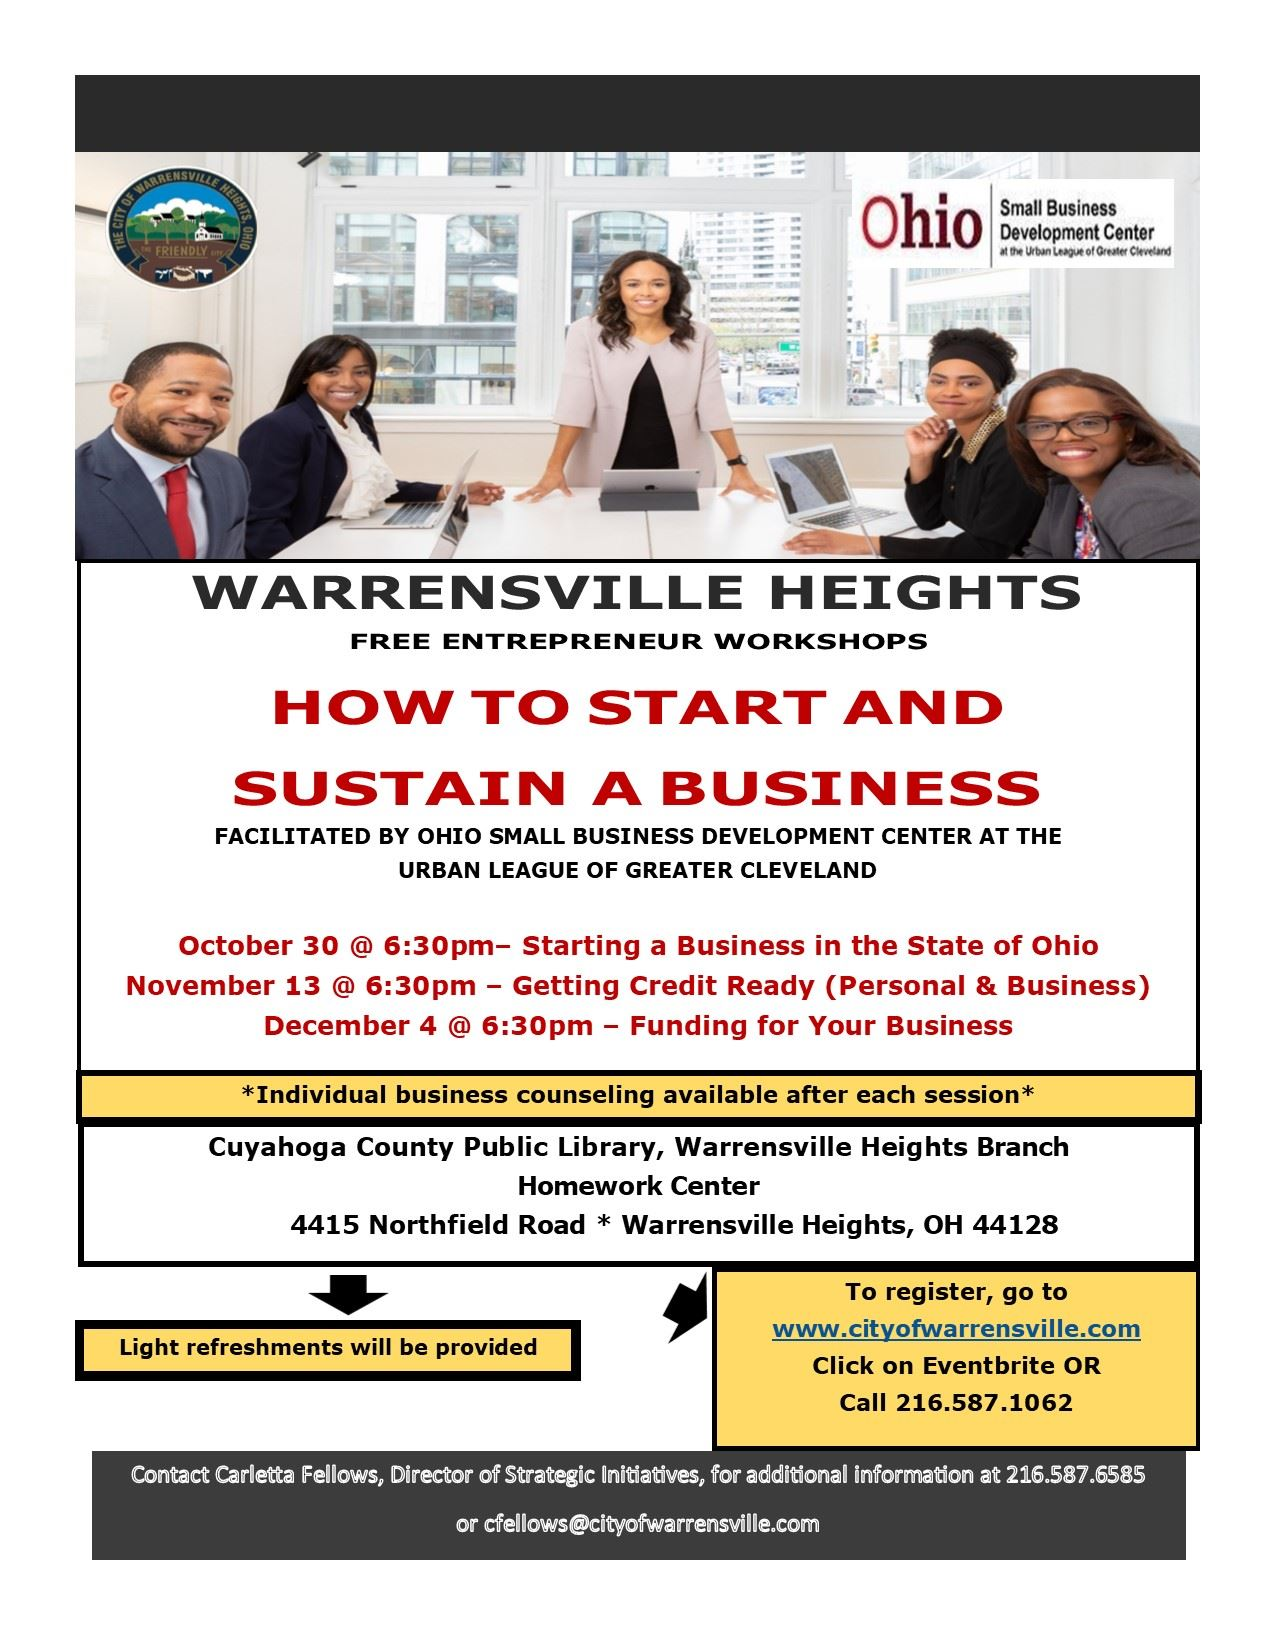 WH Entrepreneurial Workshop Flyer - Final